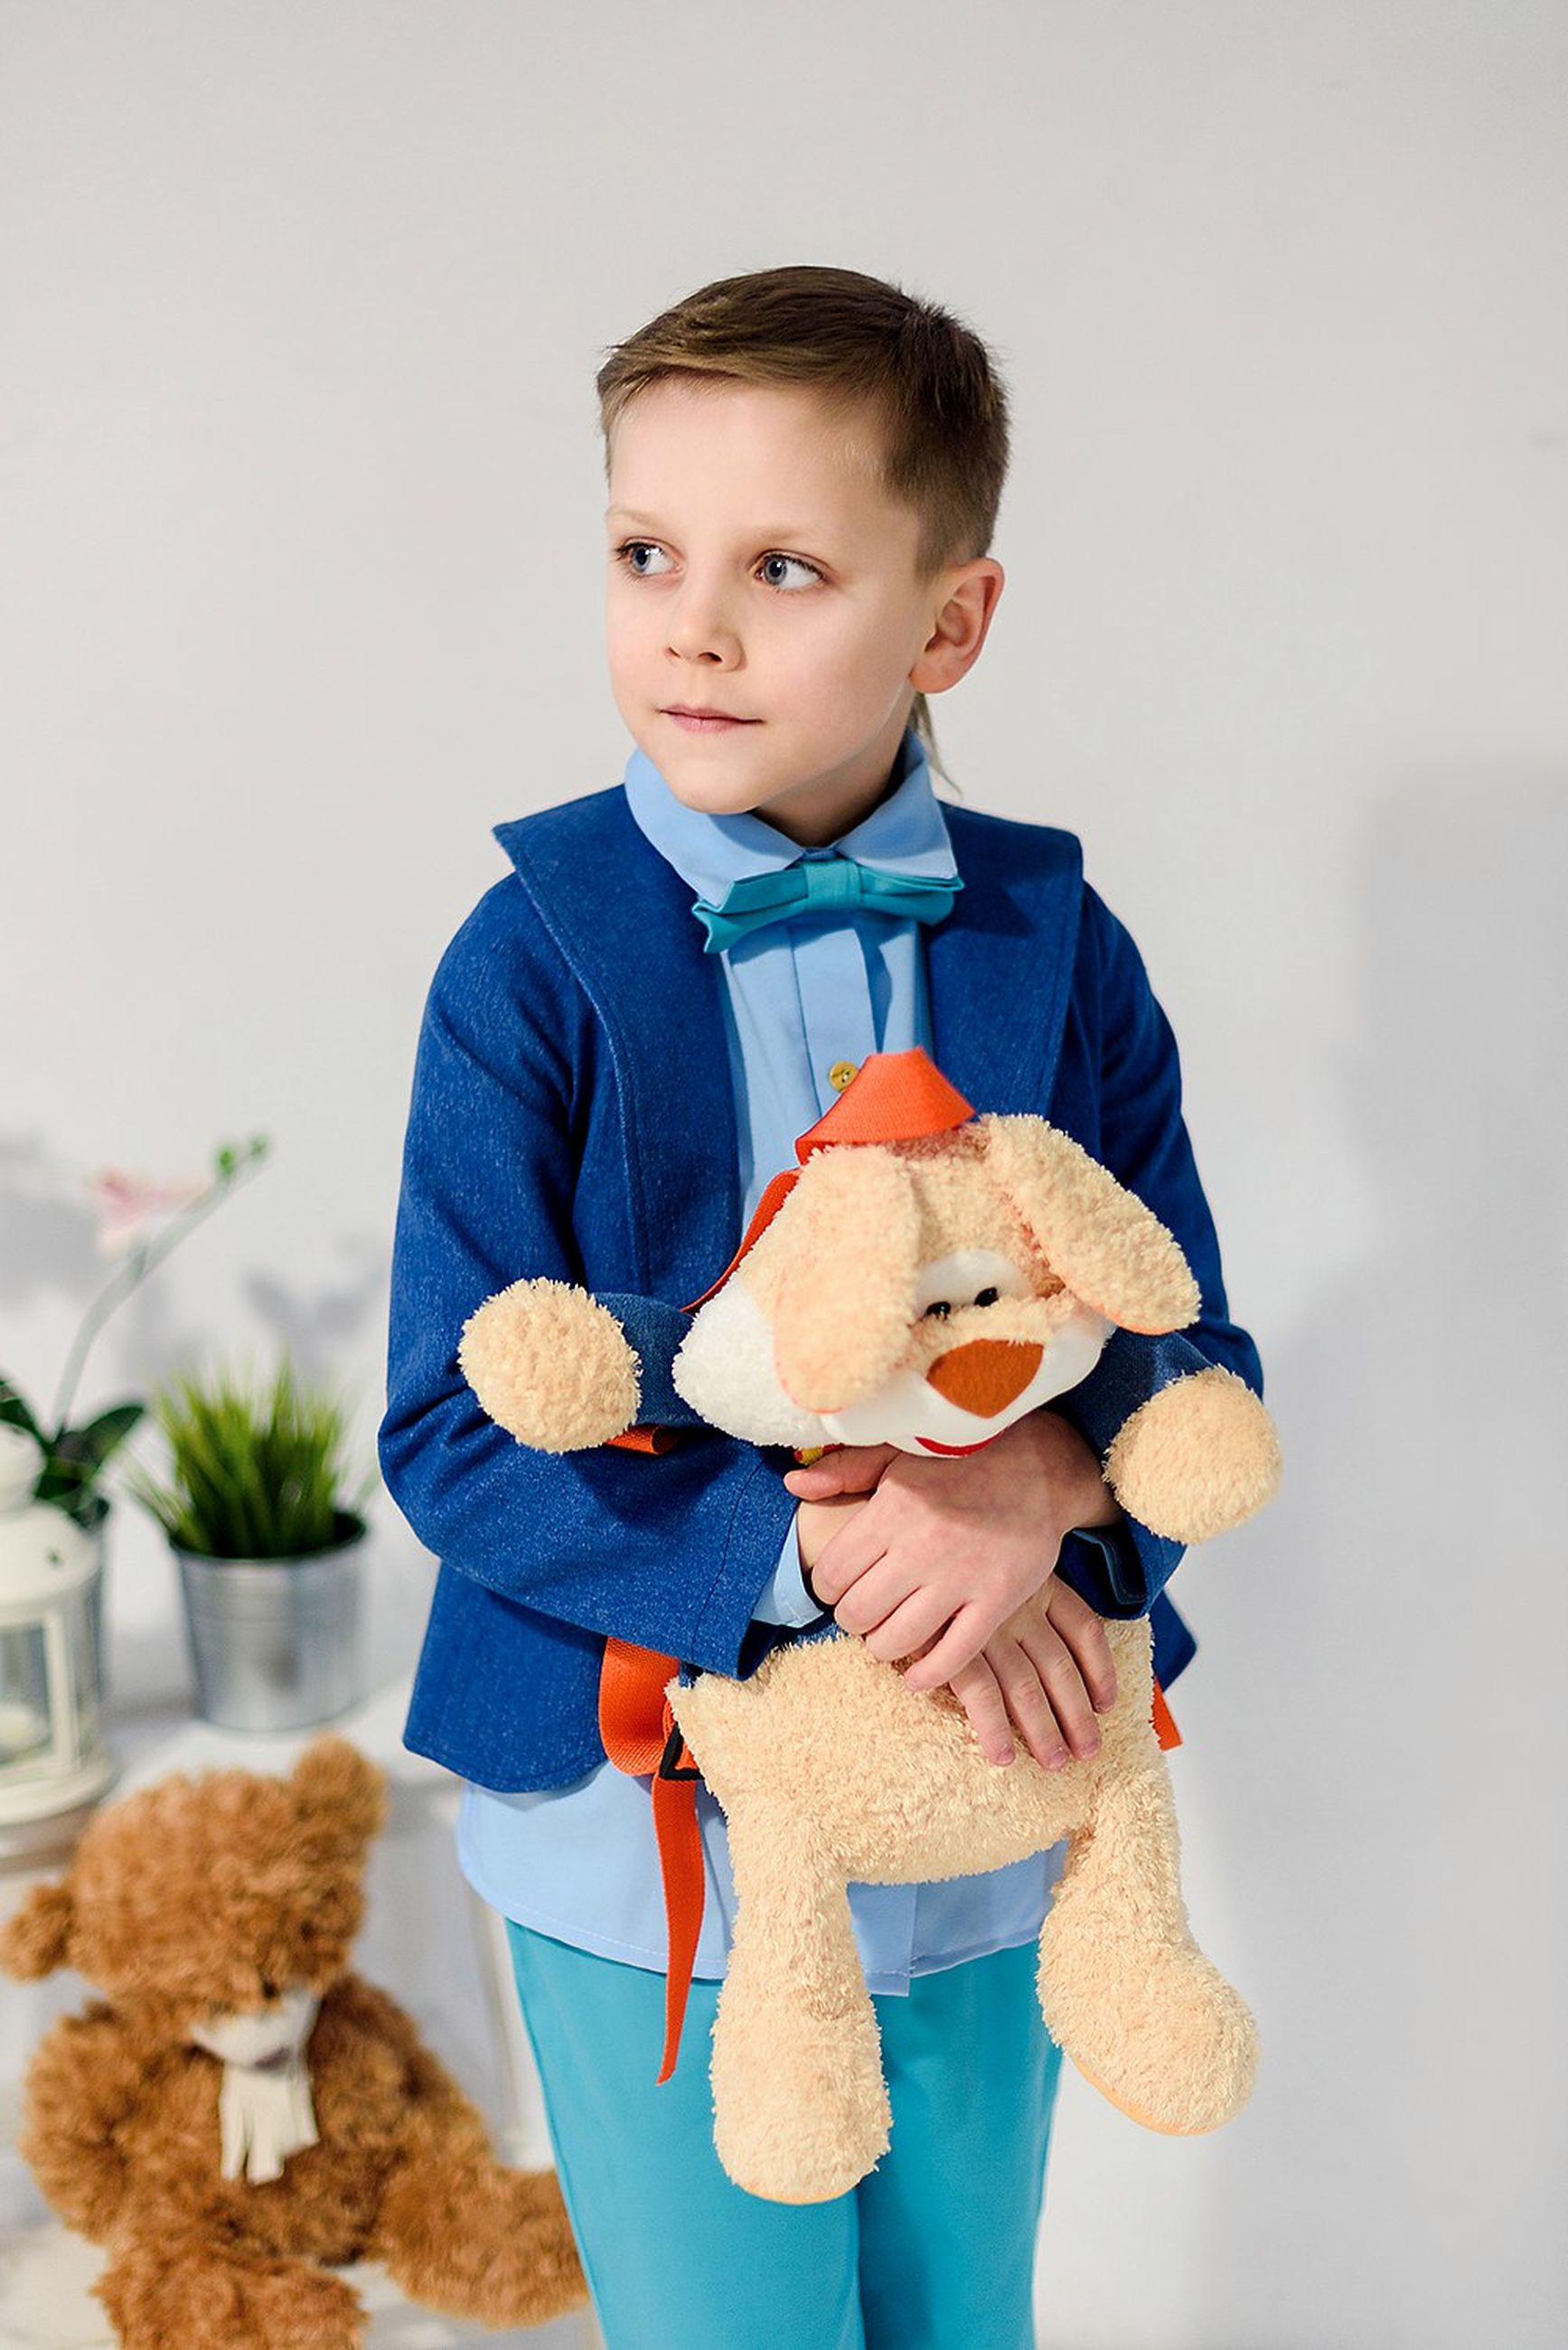 child, childhood, teddy bear, males, front view, portrait, one person, stuffed toy, indoors, one boy only, people